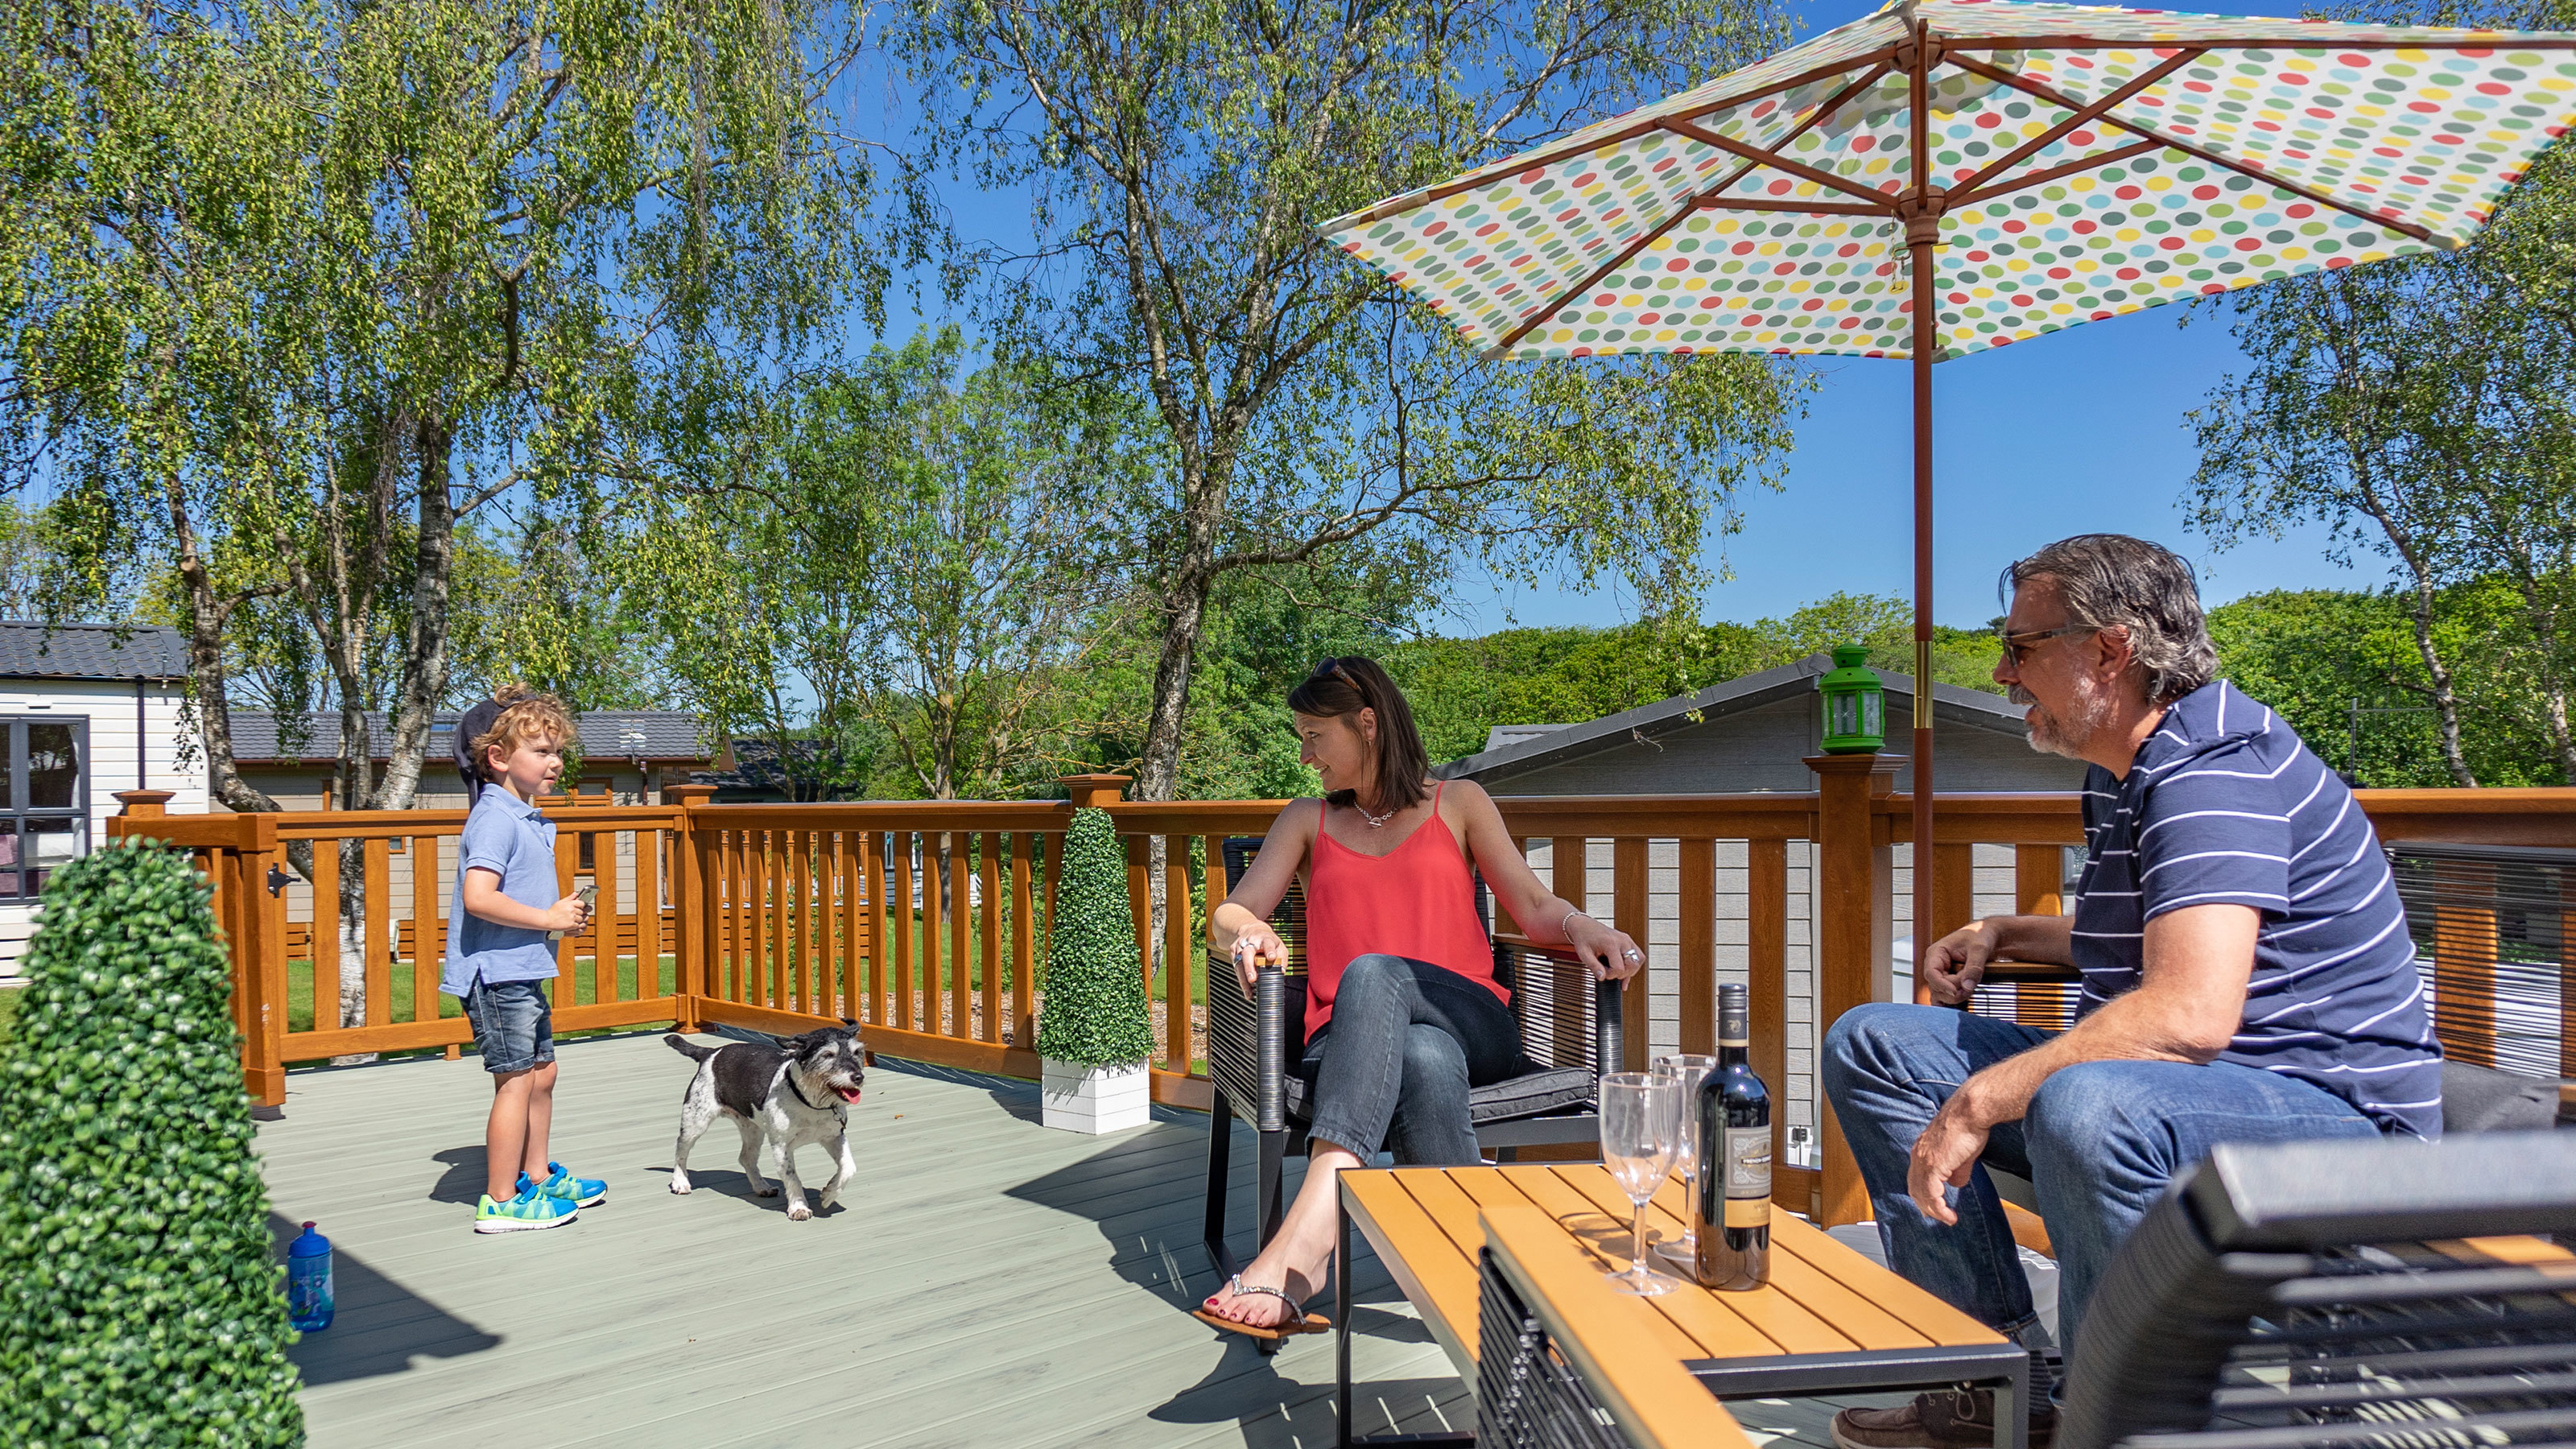 Family-enjoying-th-sunshine-on-the-decking-of-their-holiday-home